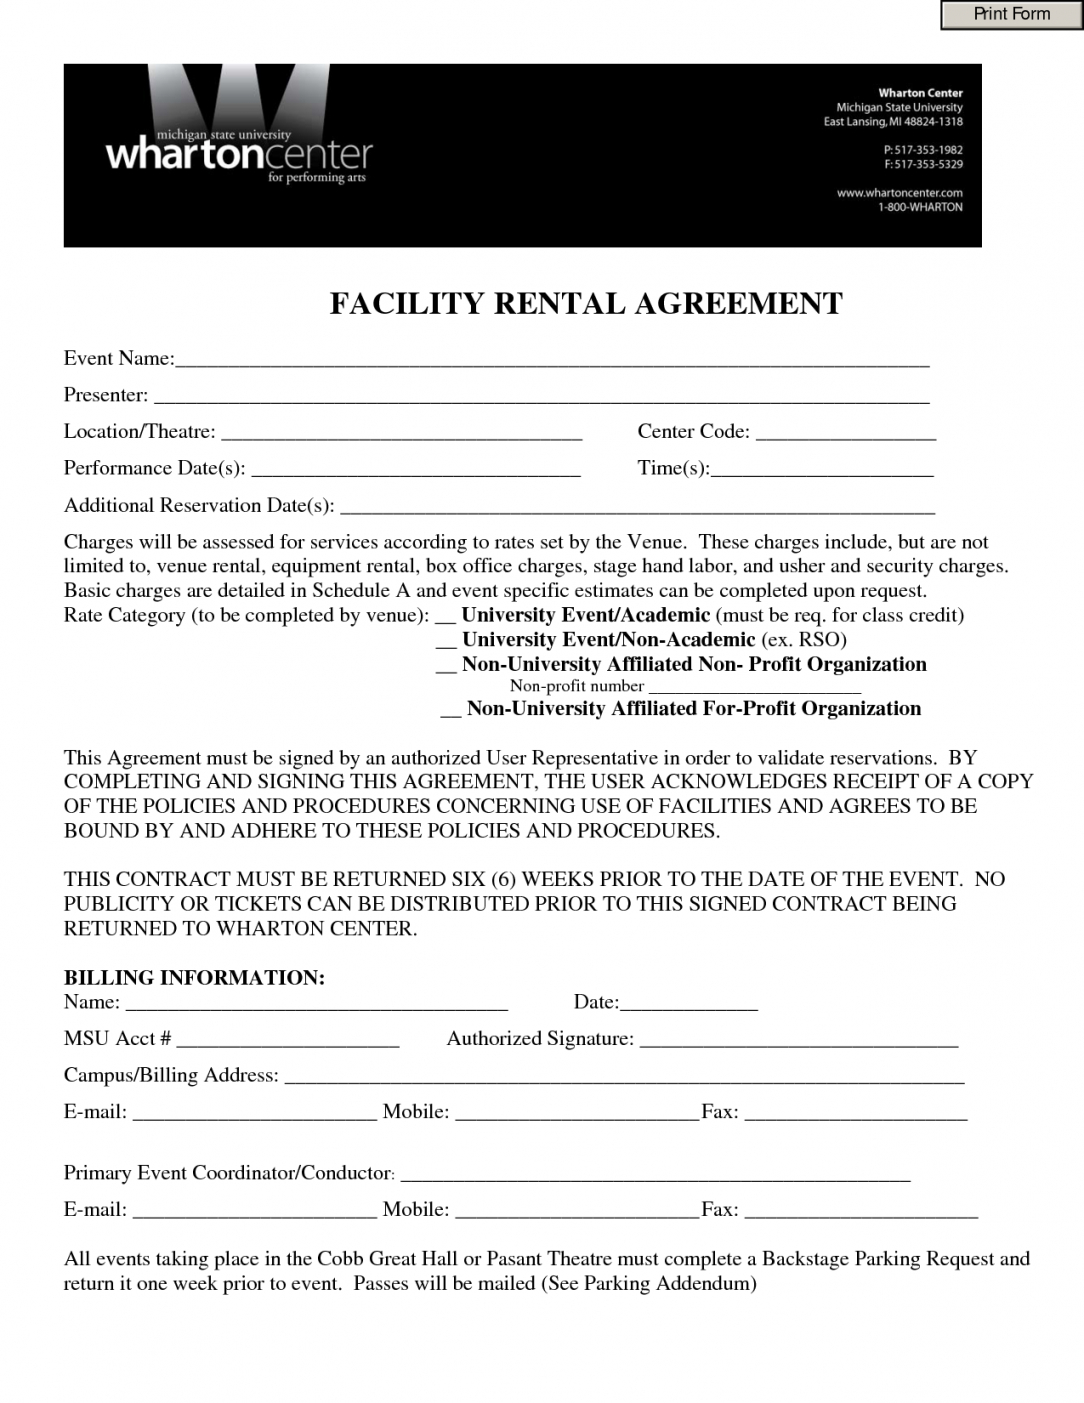 our event contract template  invitation templates  facility rental hall rental agreement contract